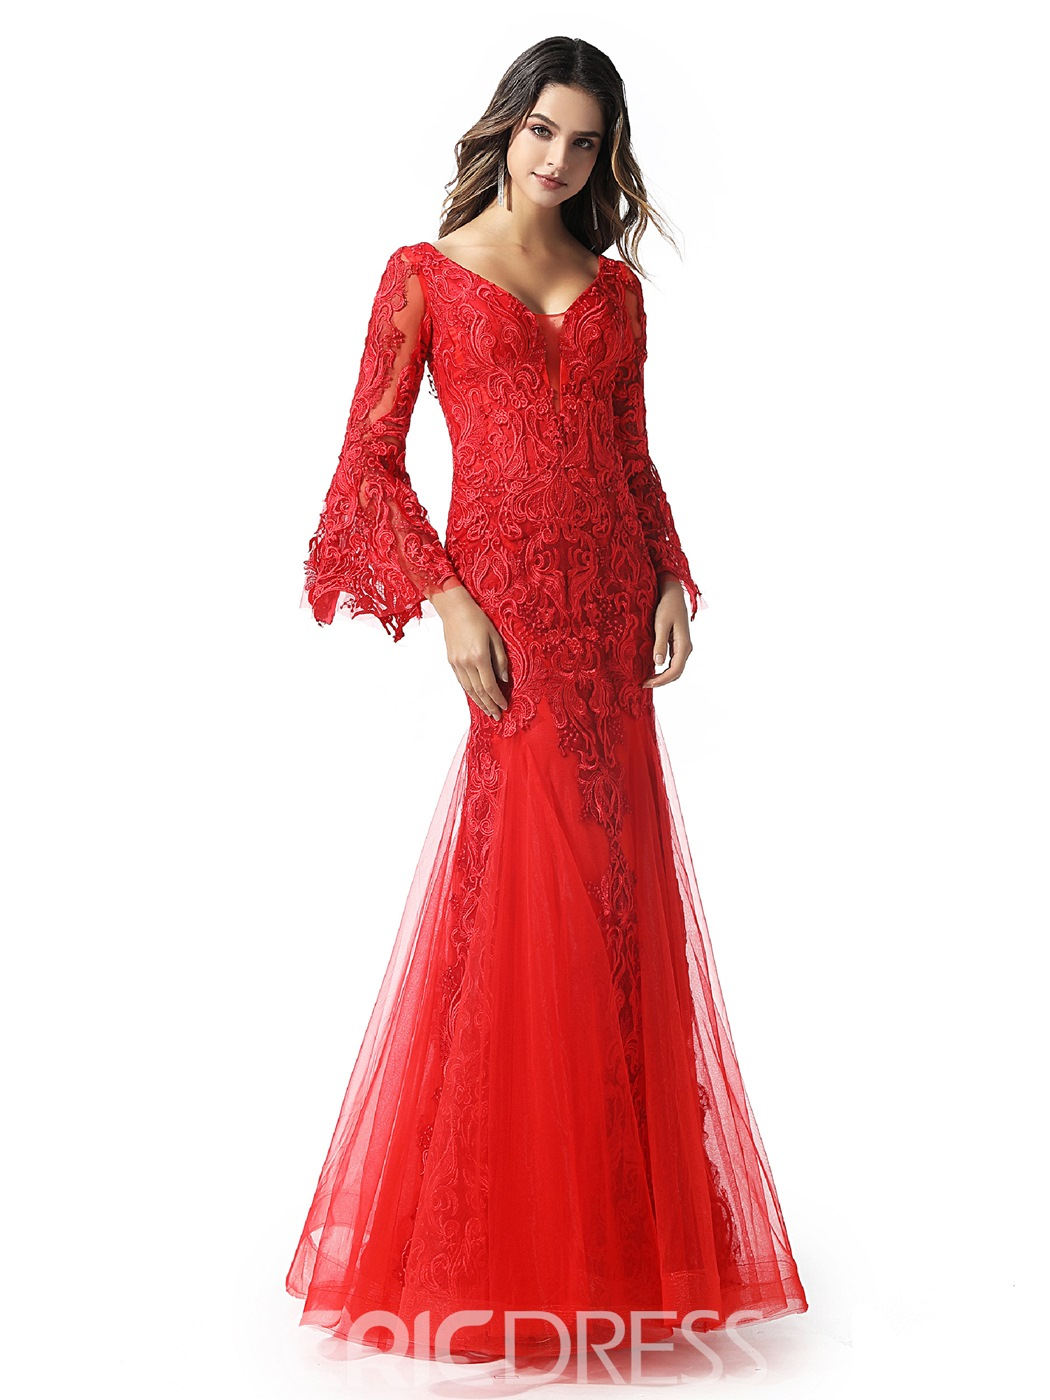 Ericdress Lace V-Neck Mermaid Evening Dress 2020